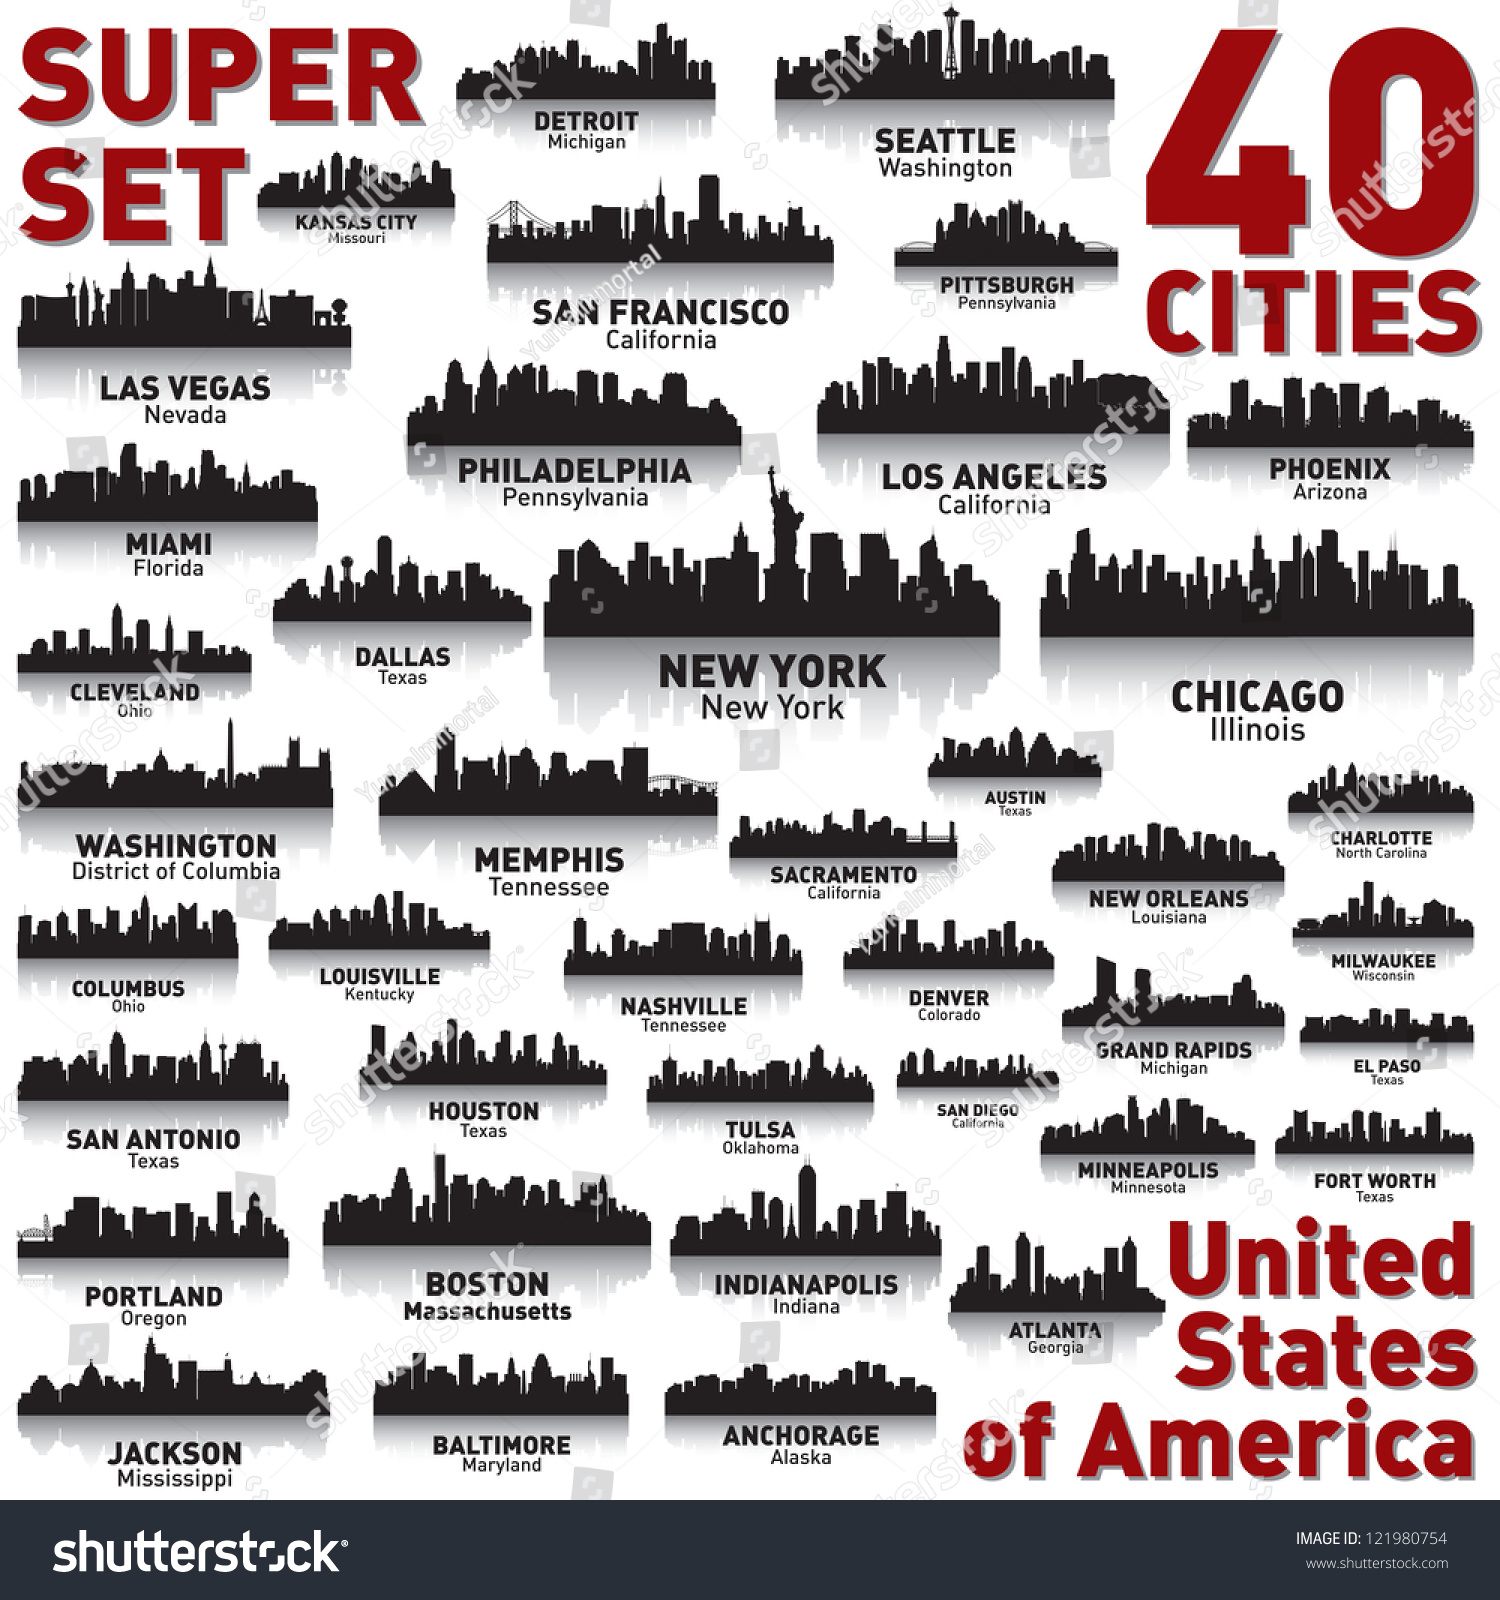 Incredible city skyline set 40 city silhouettes of united for United states of america cities